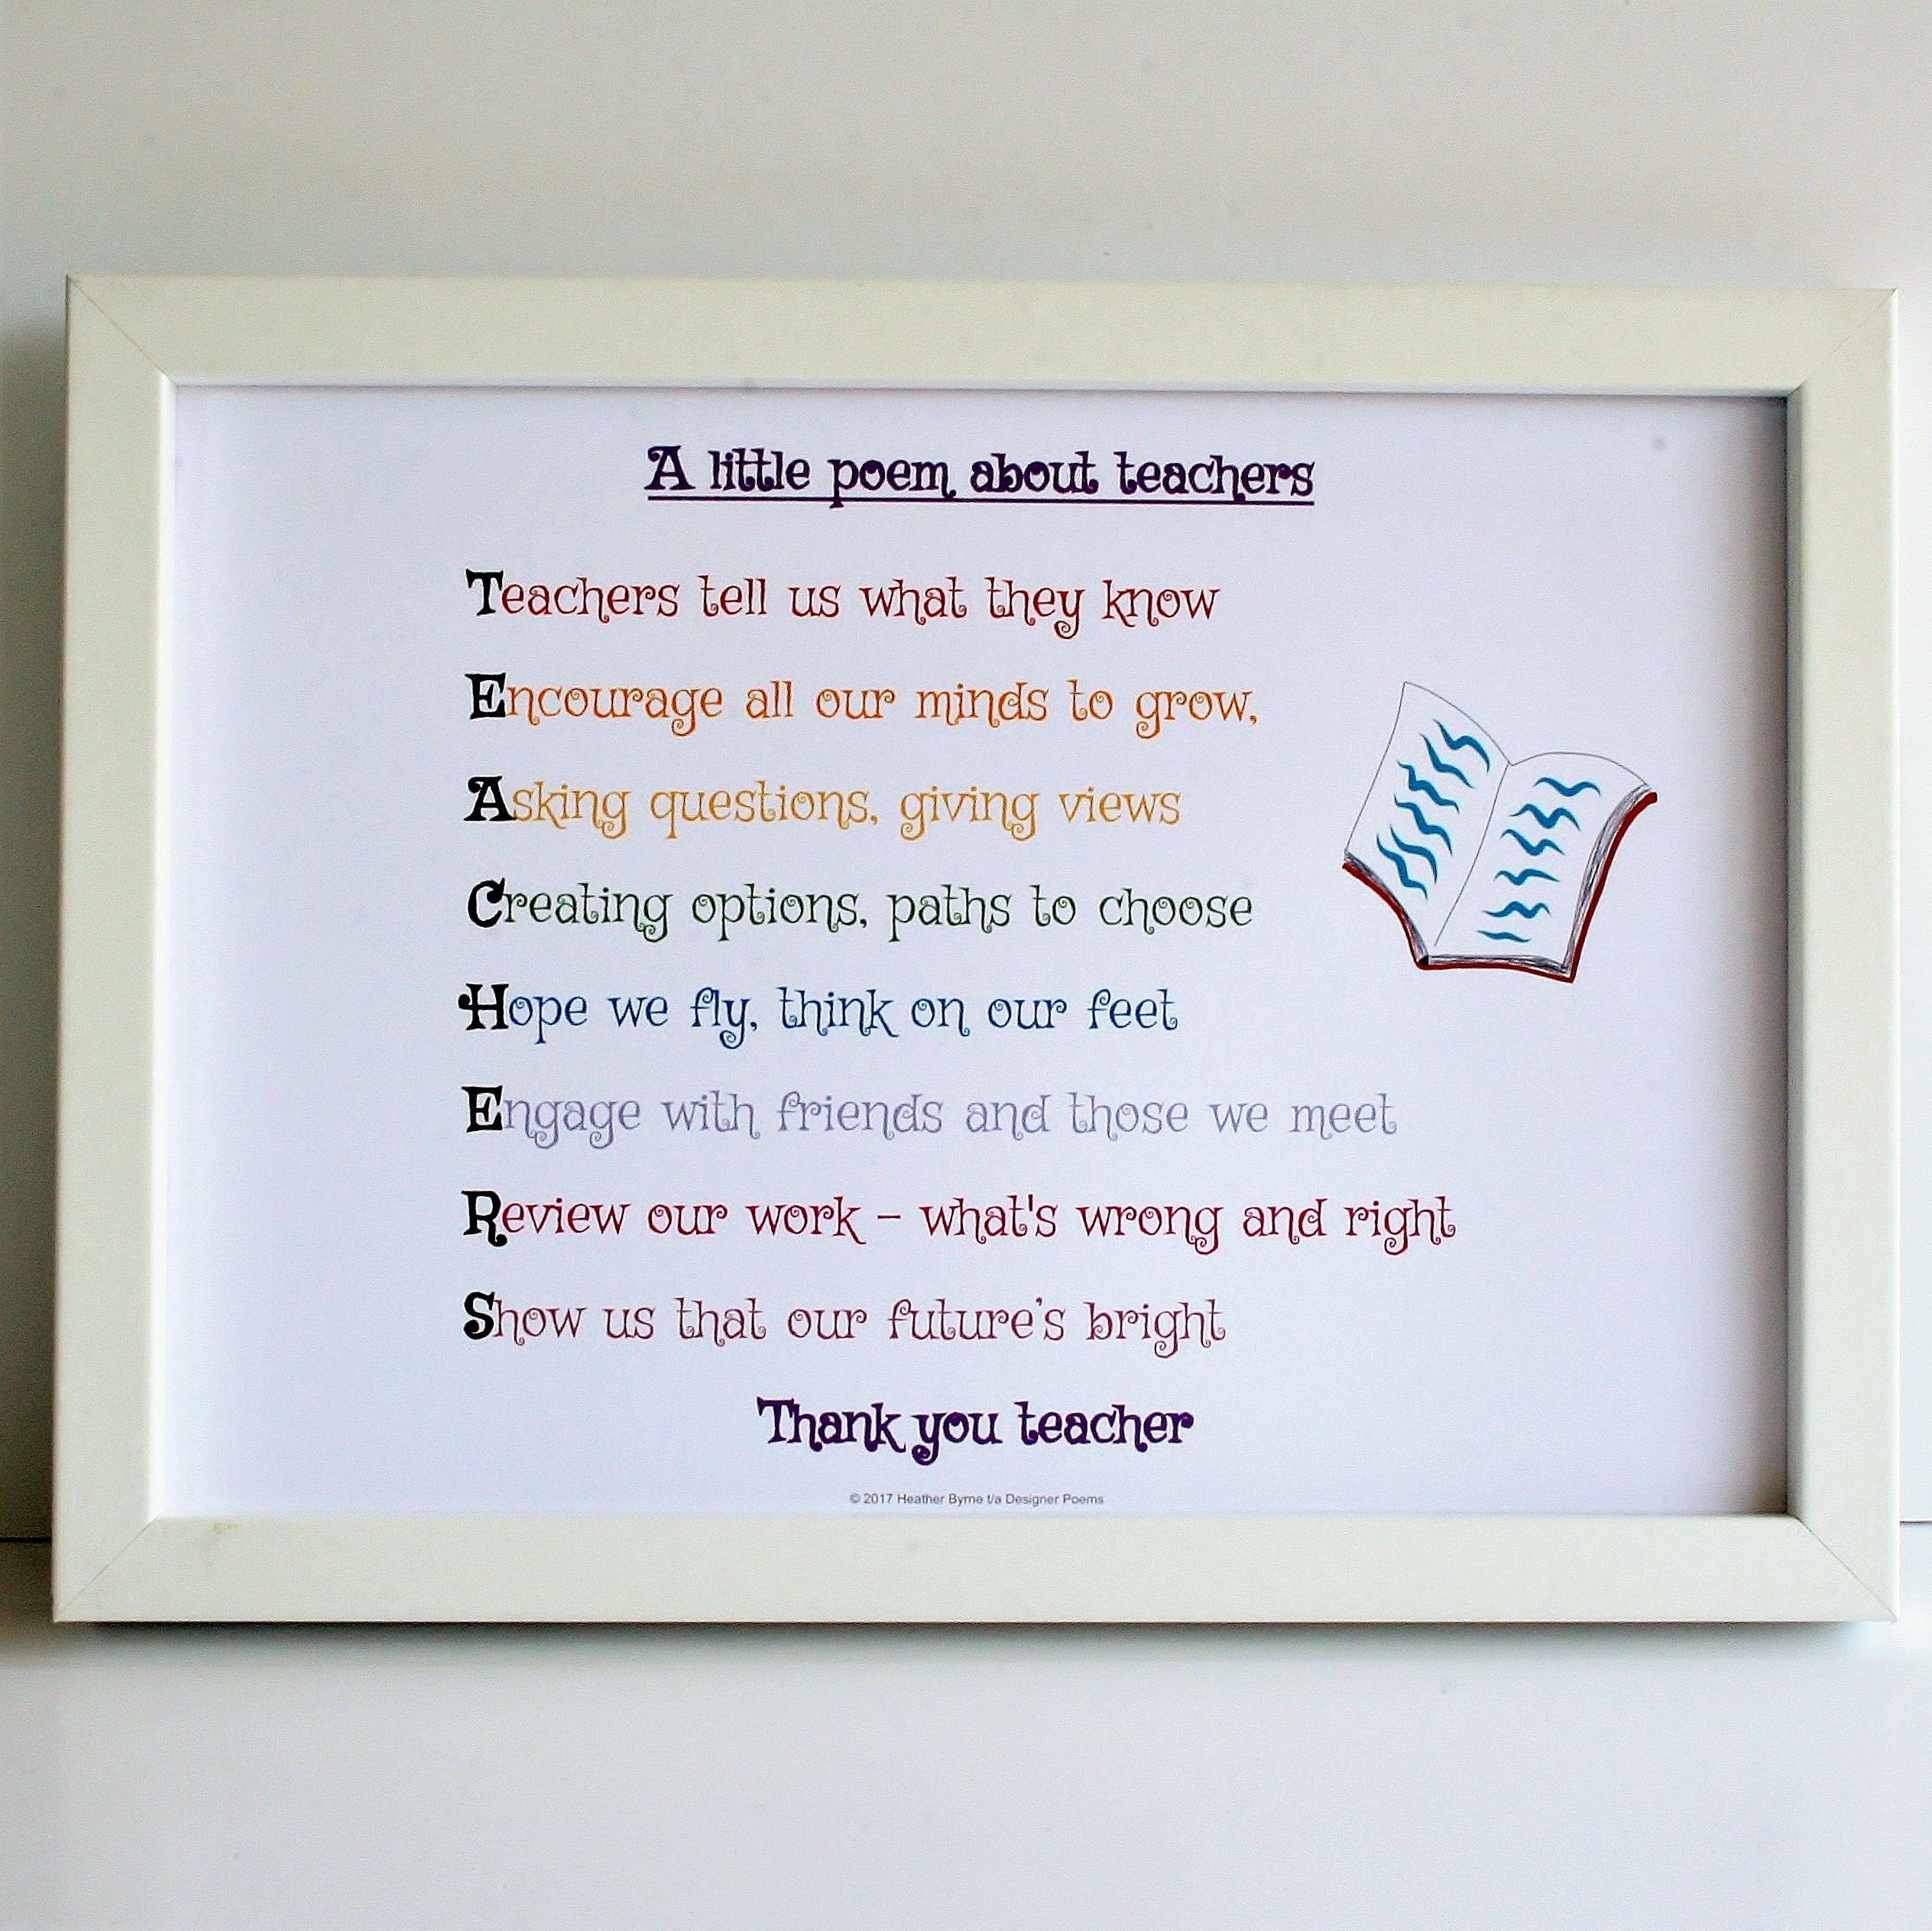 Thank You Teacher Poems | www.pixshark.com - Images ...